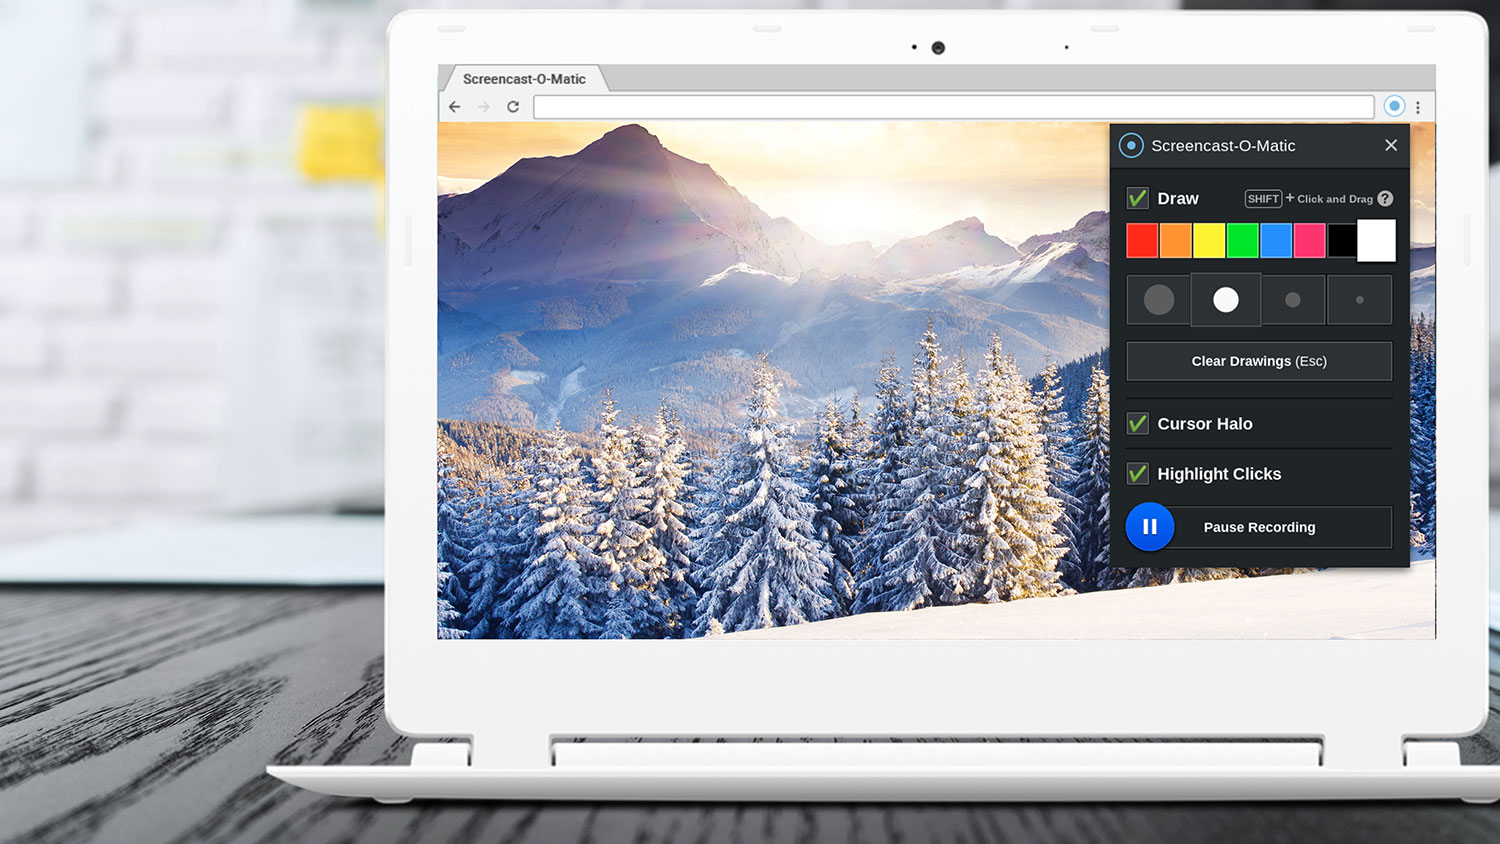 Get All the Great Features on Chromebook